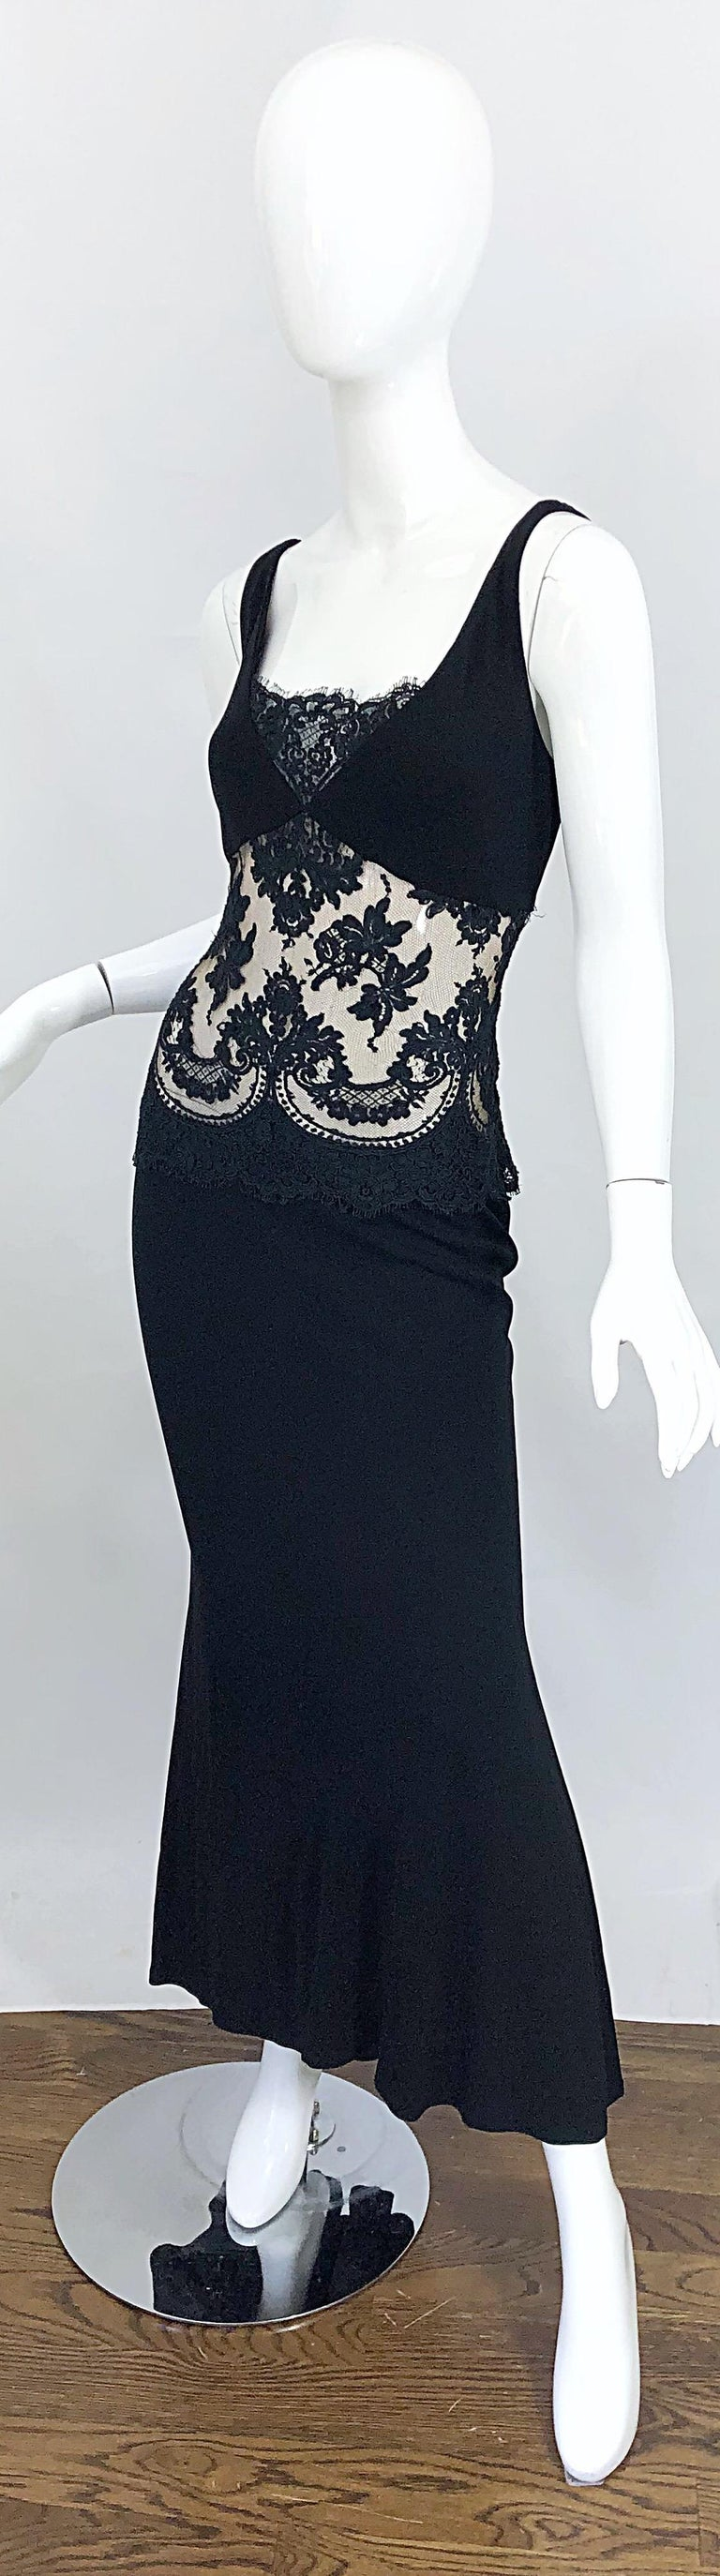 1990s Randolph Duke Black Sexy Lace Cut-Out Sleeveless Vintage 90s Evening Gown For Sale 1